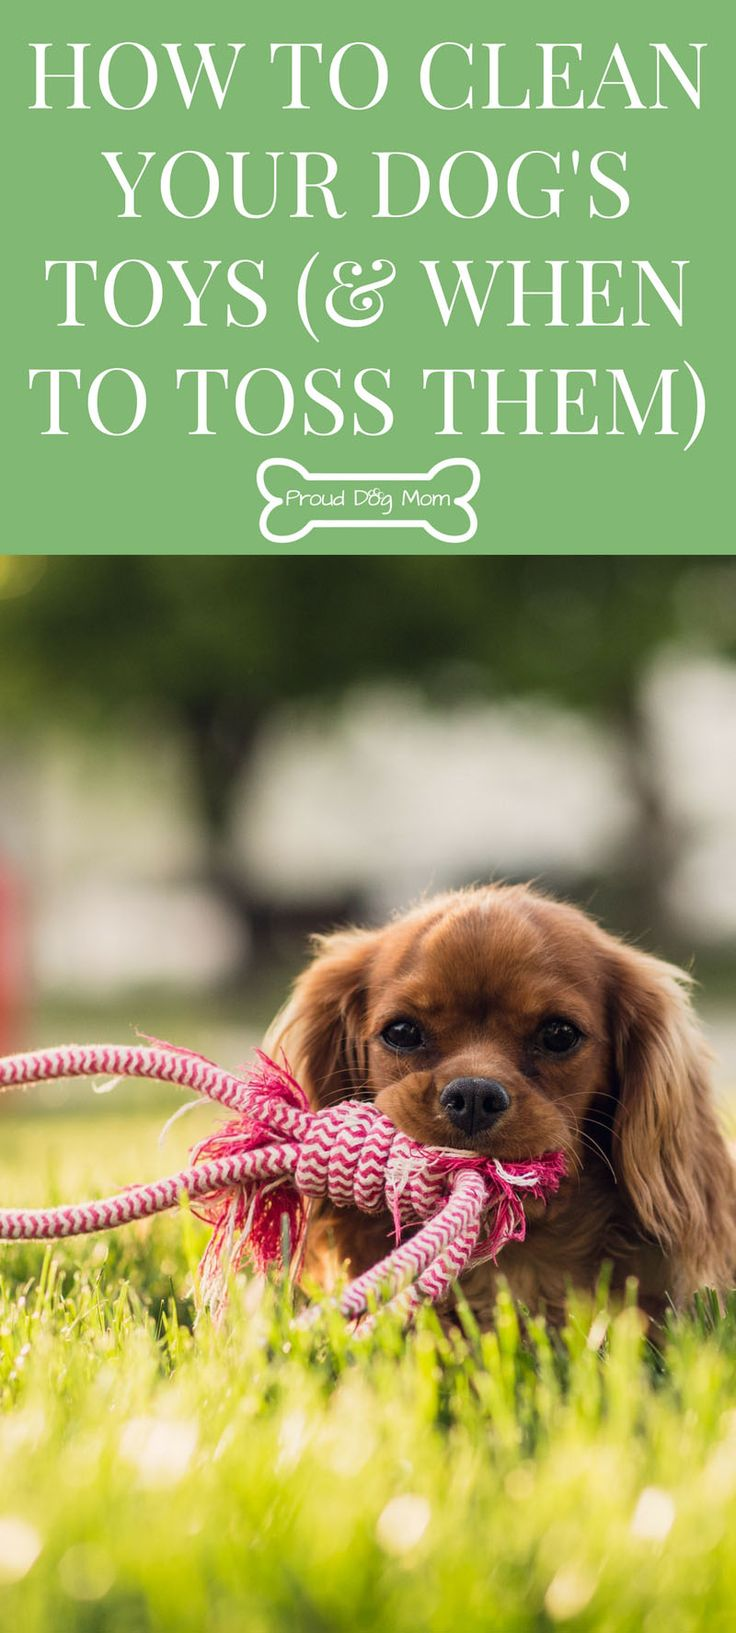 How To Properly Disinfect Toys : Best interactive dog toys ideas on pinterest